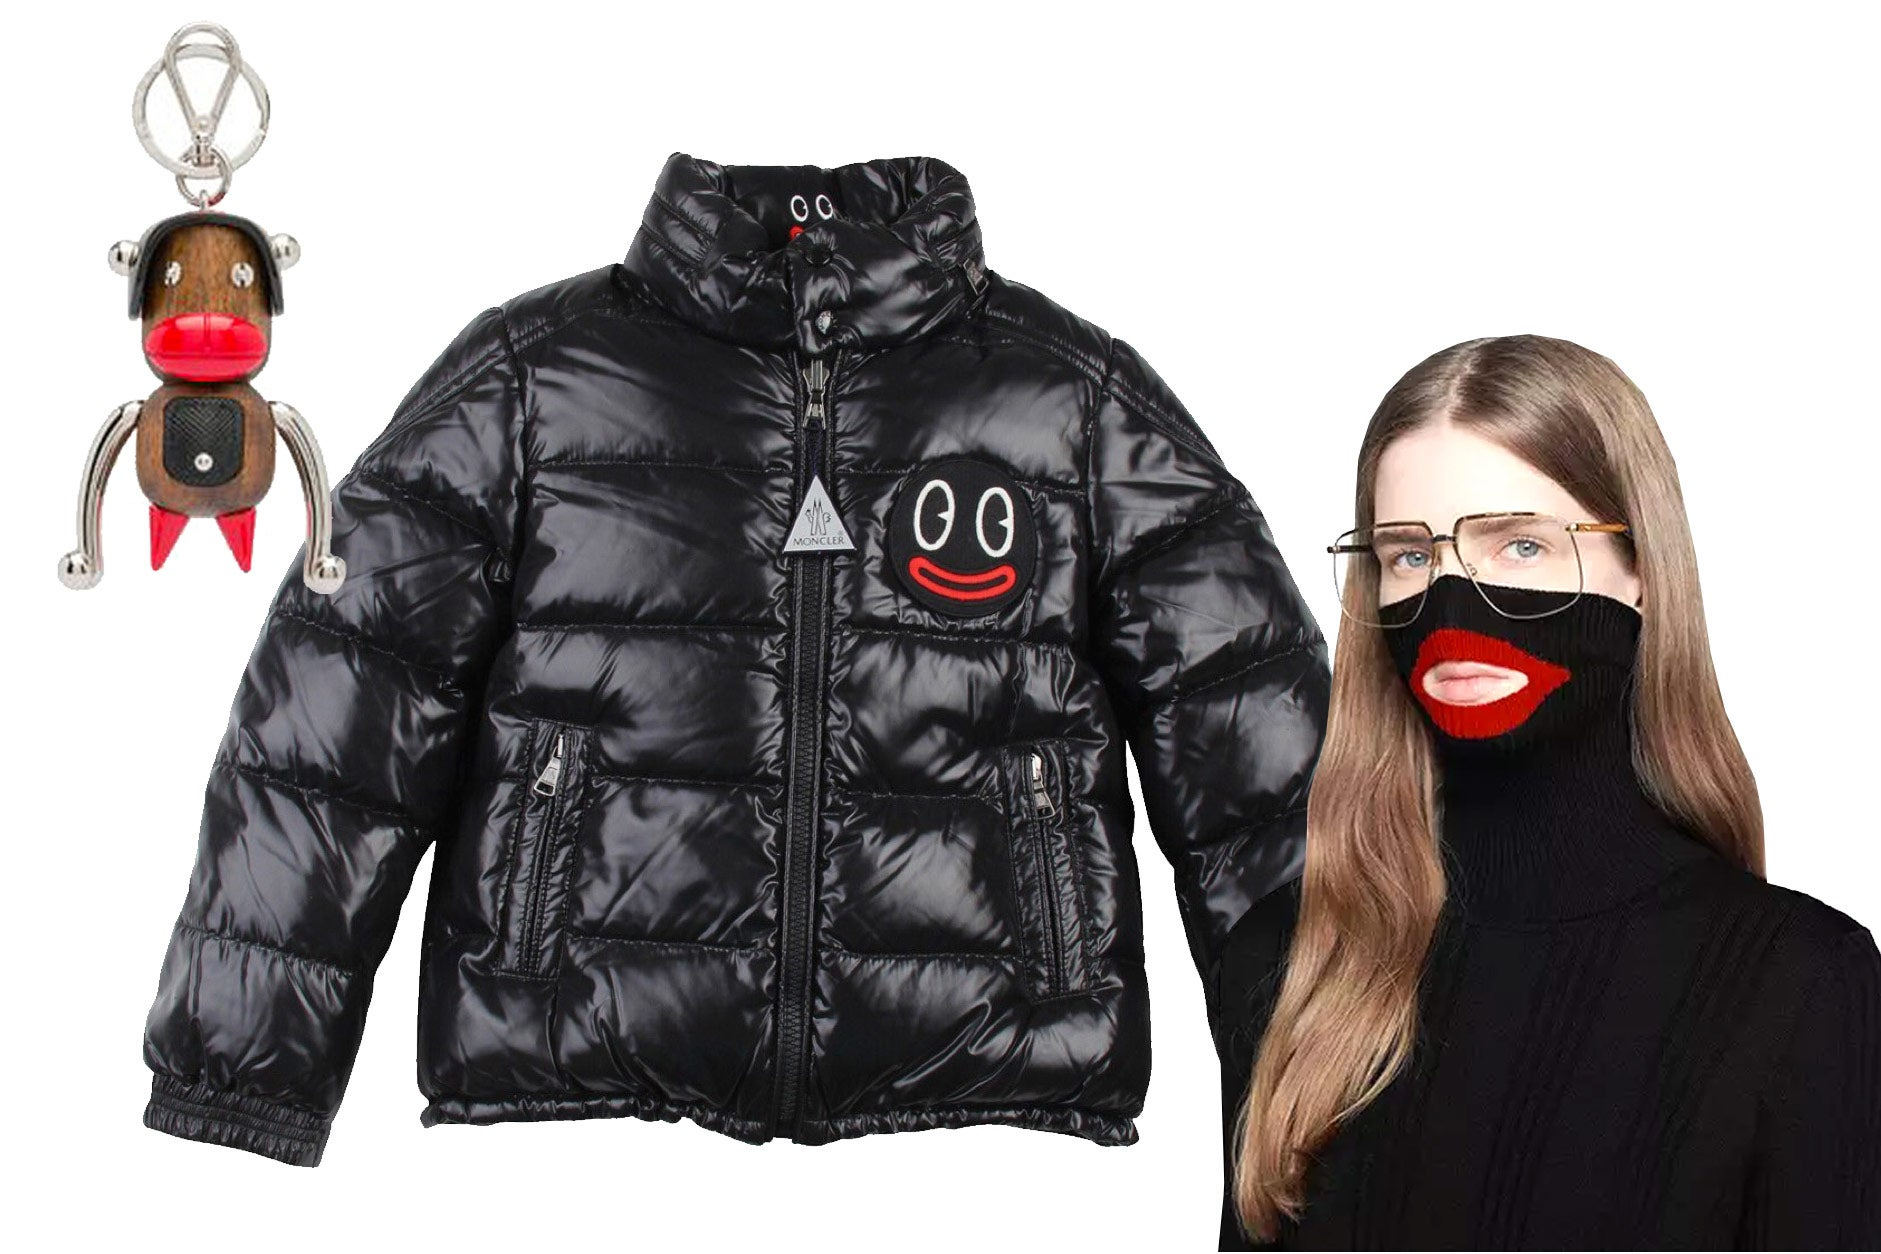 Recent examples of blackface in fashion.